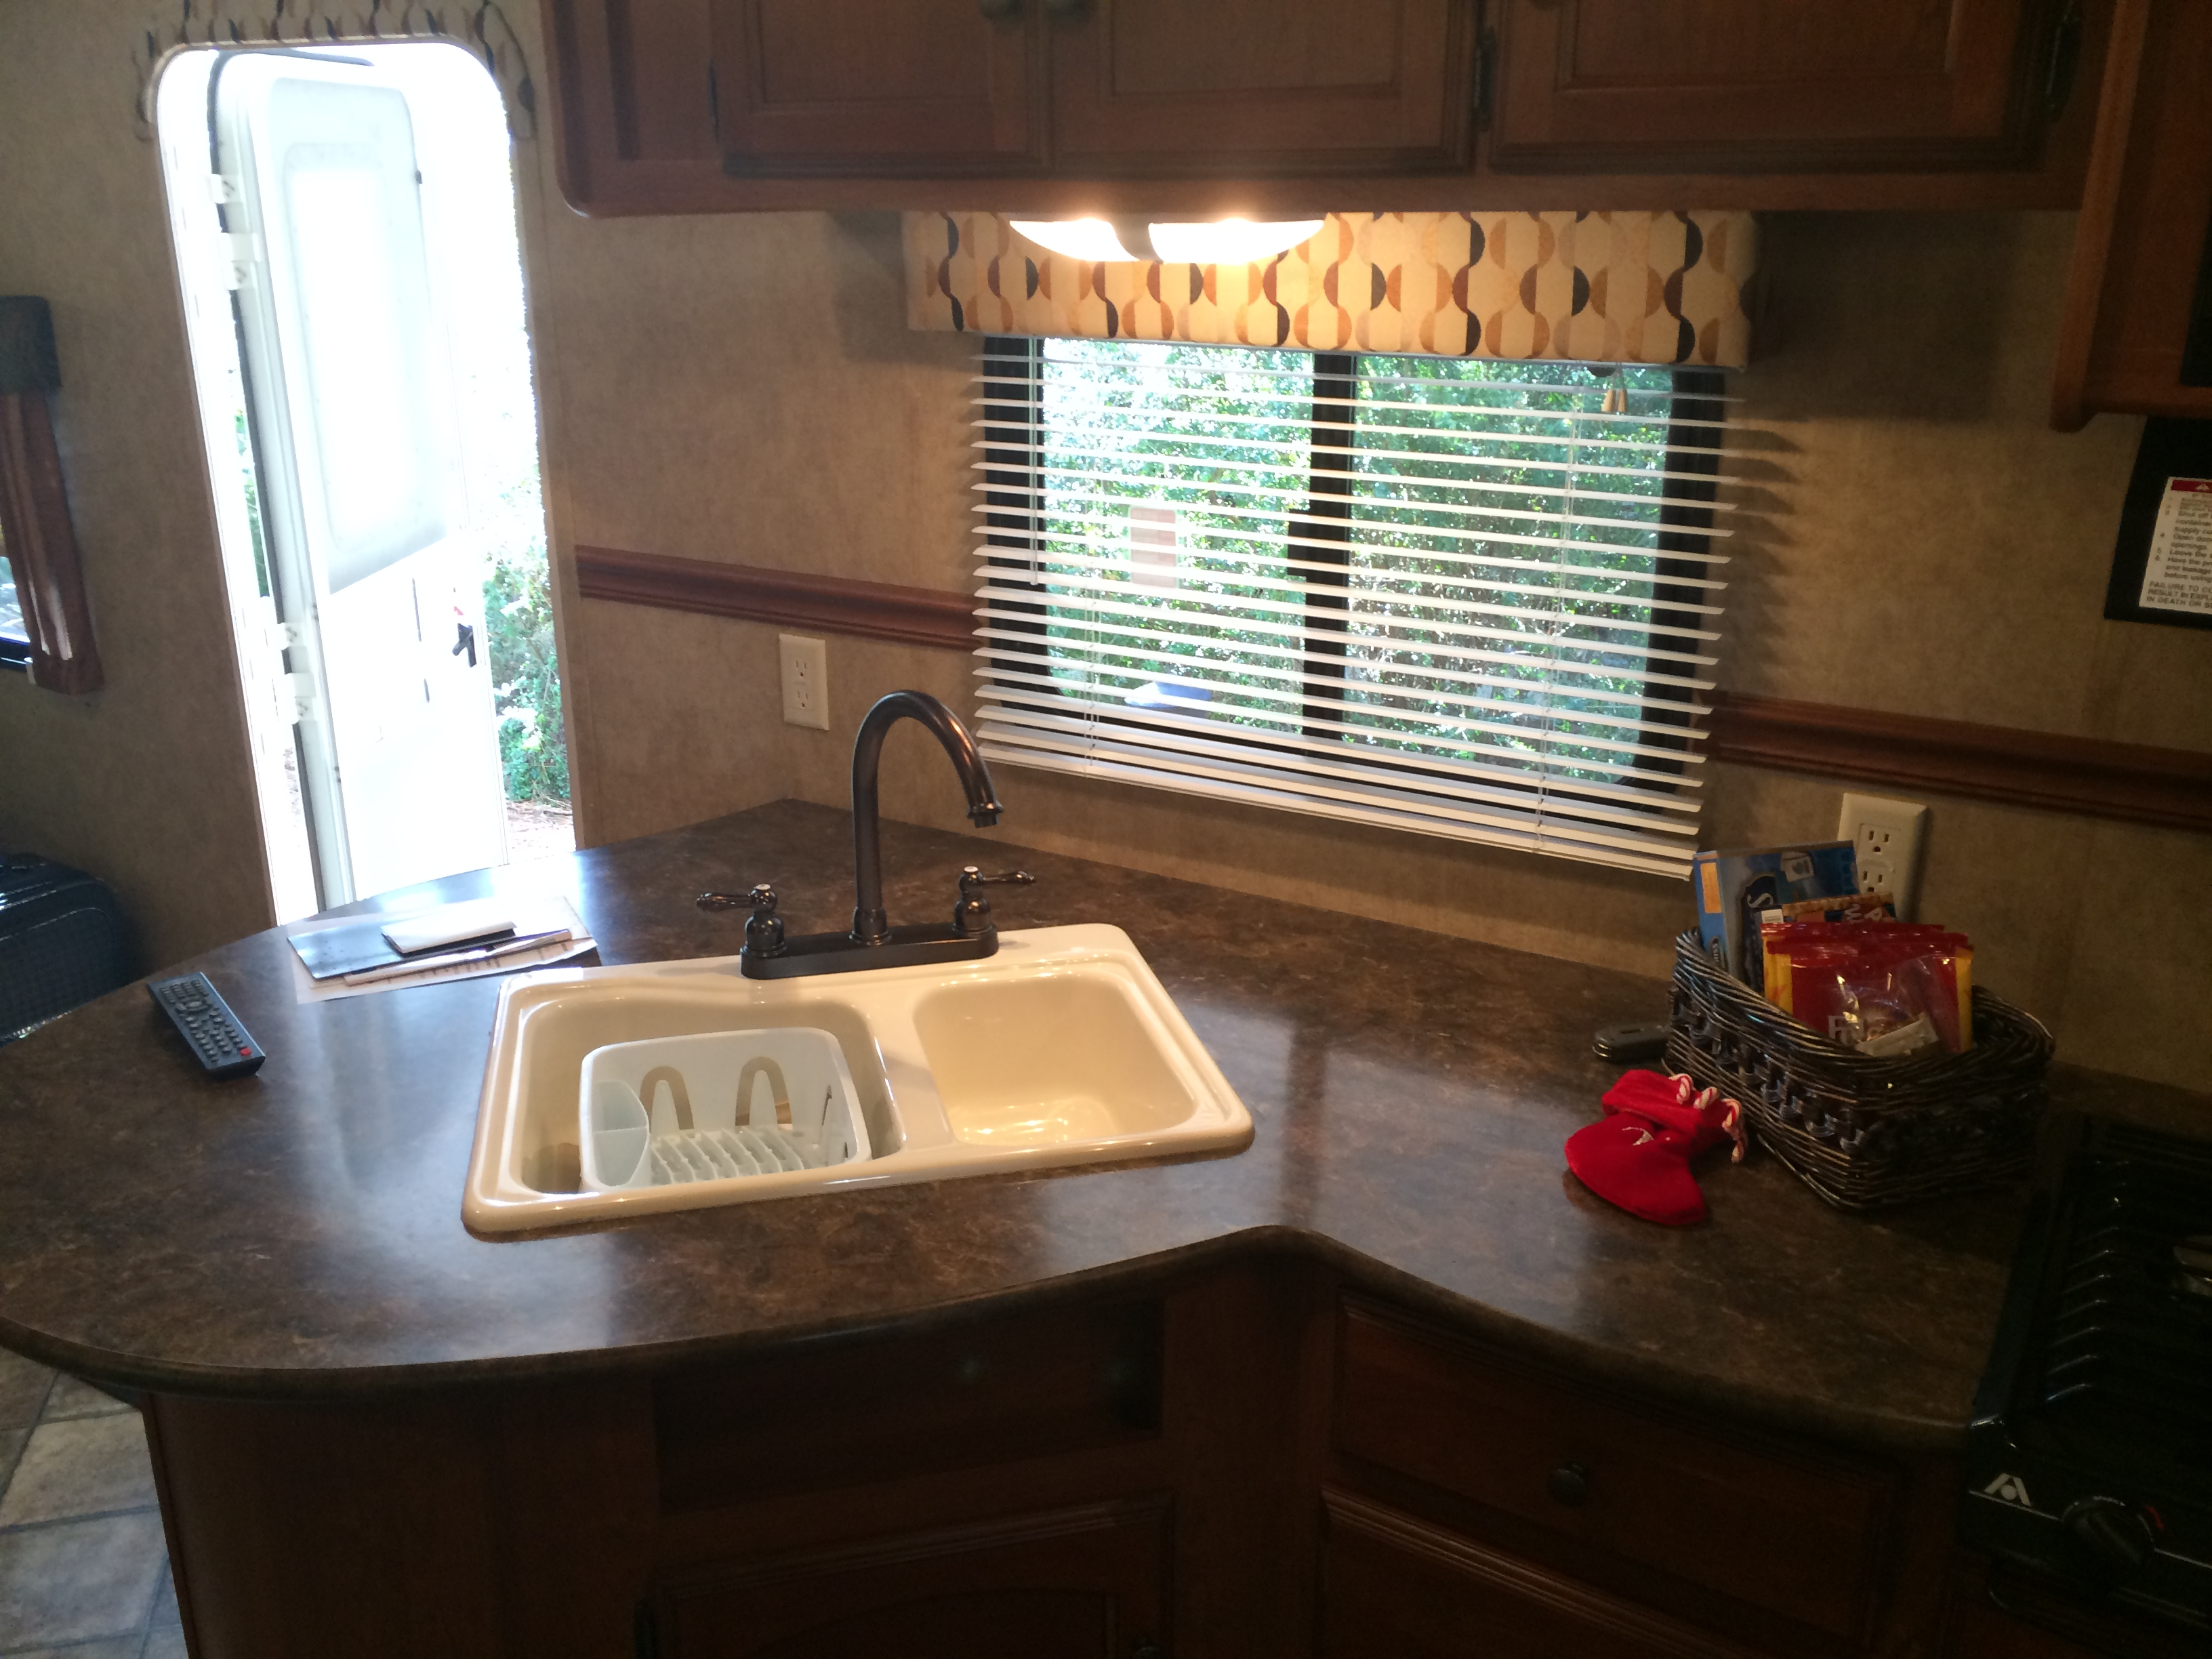 Rv Bathroom Sink at Home and Interior Design Ideas